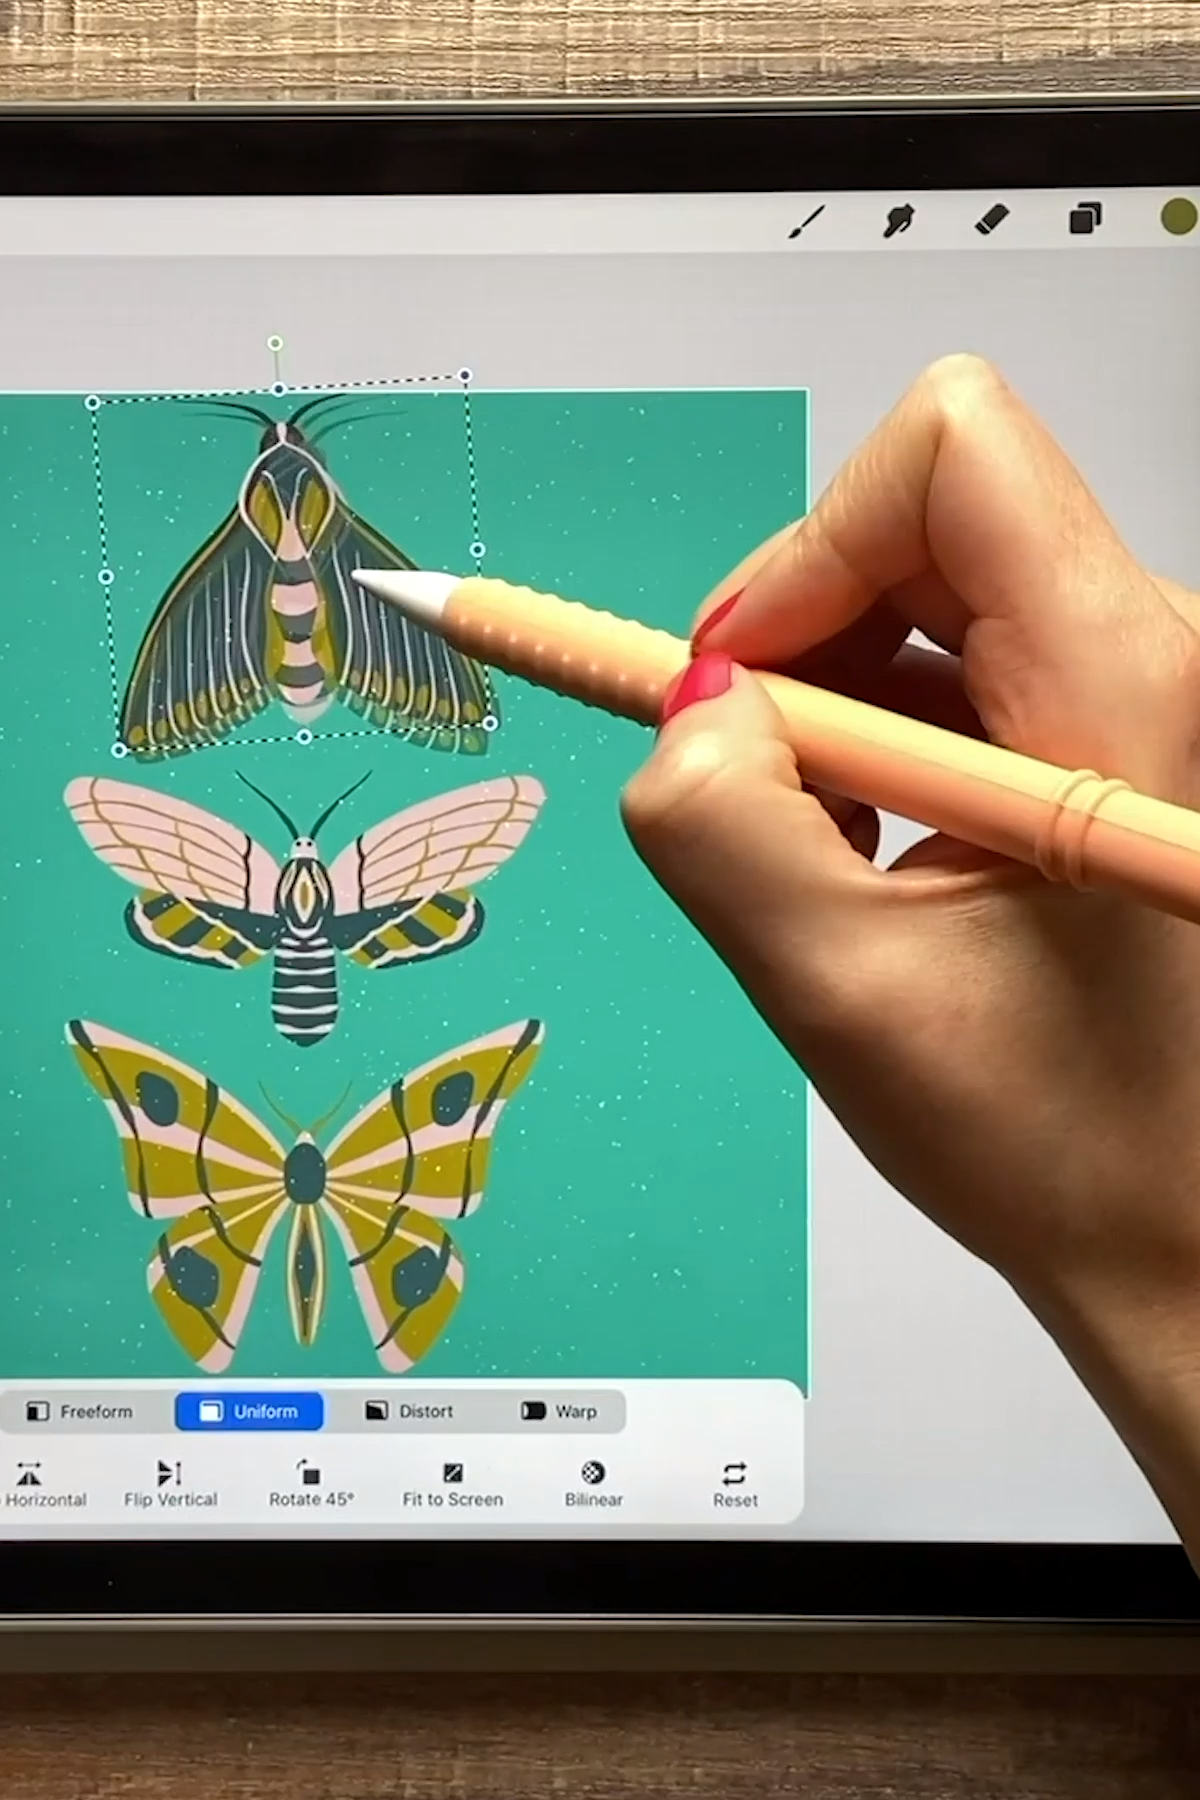 Insect Illustrations And Animations On Your Ipad In Procreate Video In 2020 Procreate Ipad Art Really Cool Drawings Ipad Painting